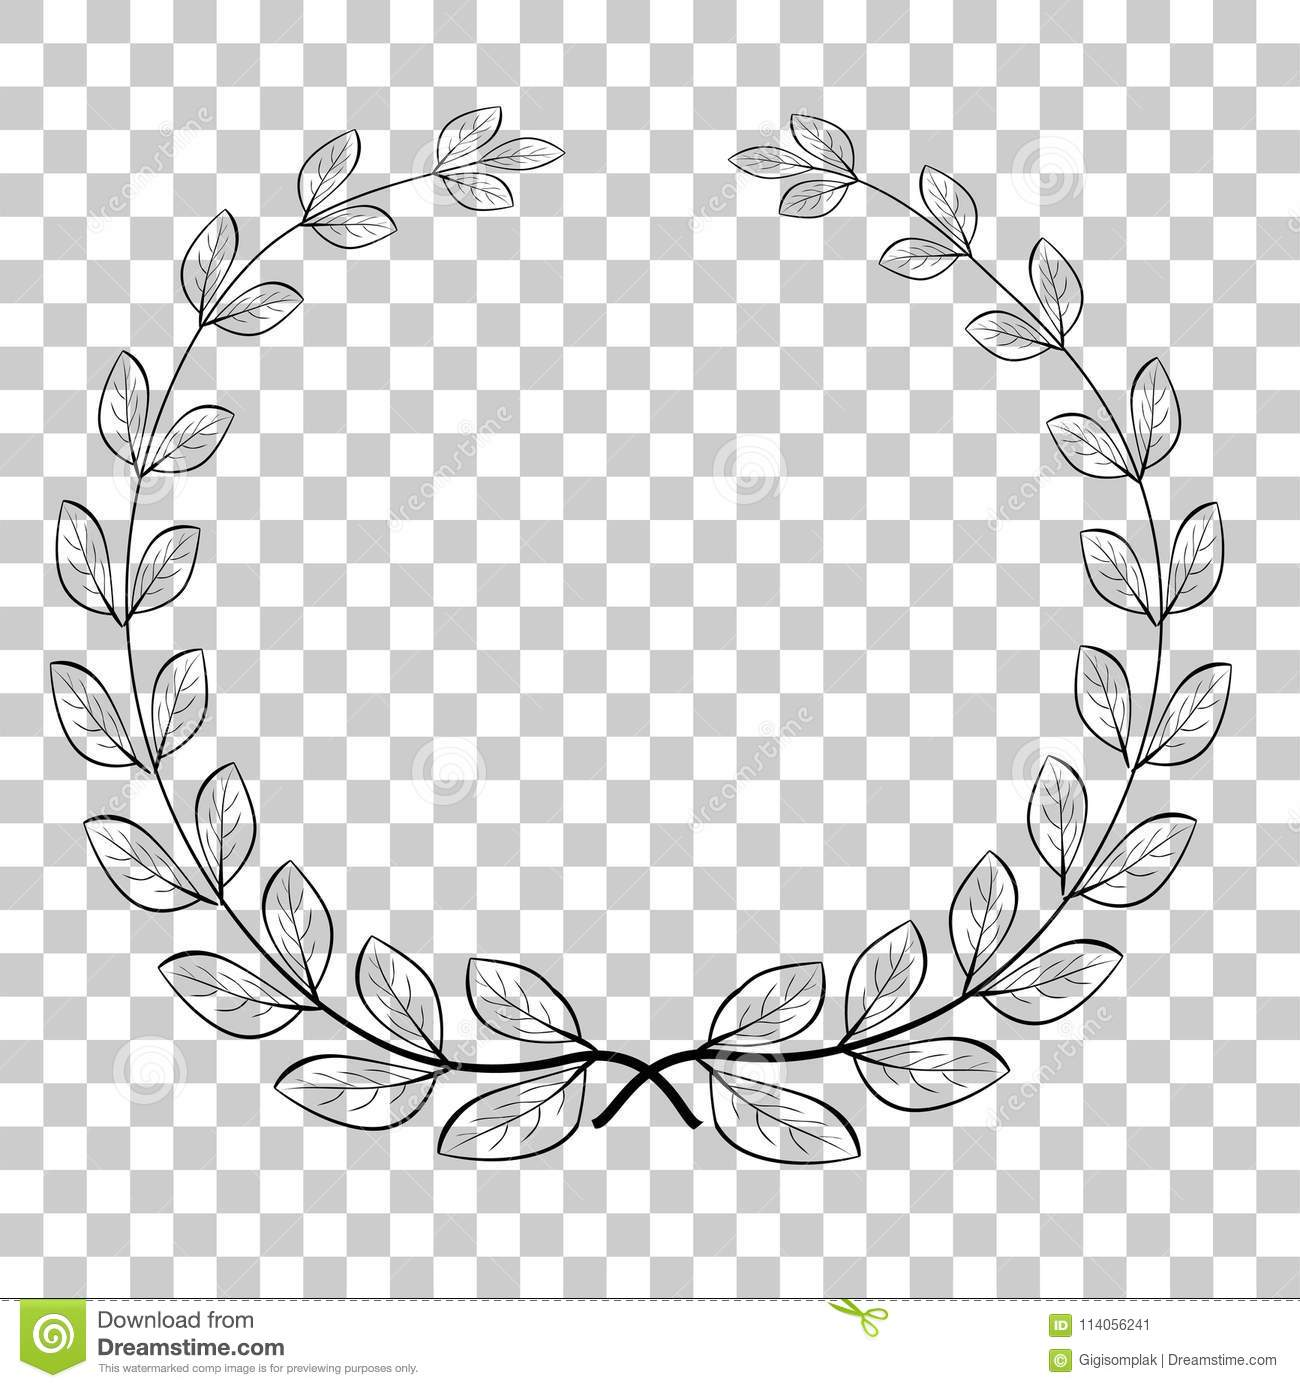 Circle Border Transparent - Doodle Circle Laurel Wreath Vector Icon, For Your Title Border, At ...